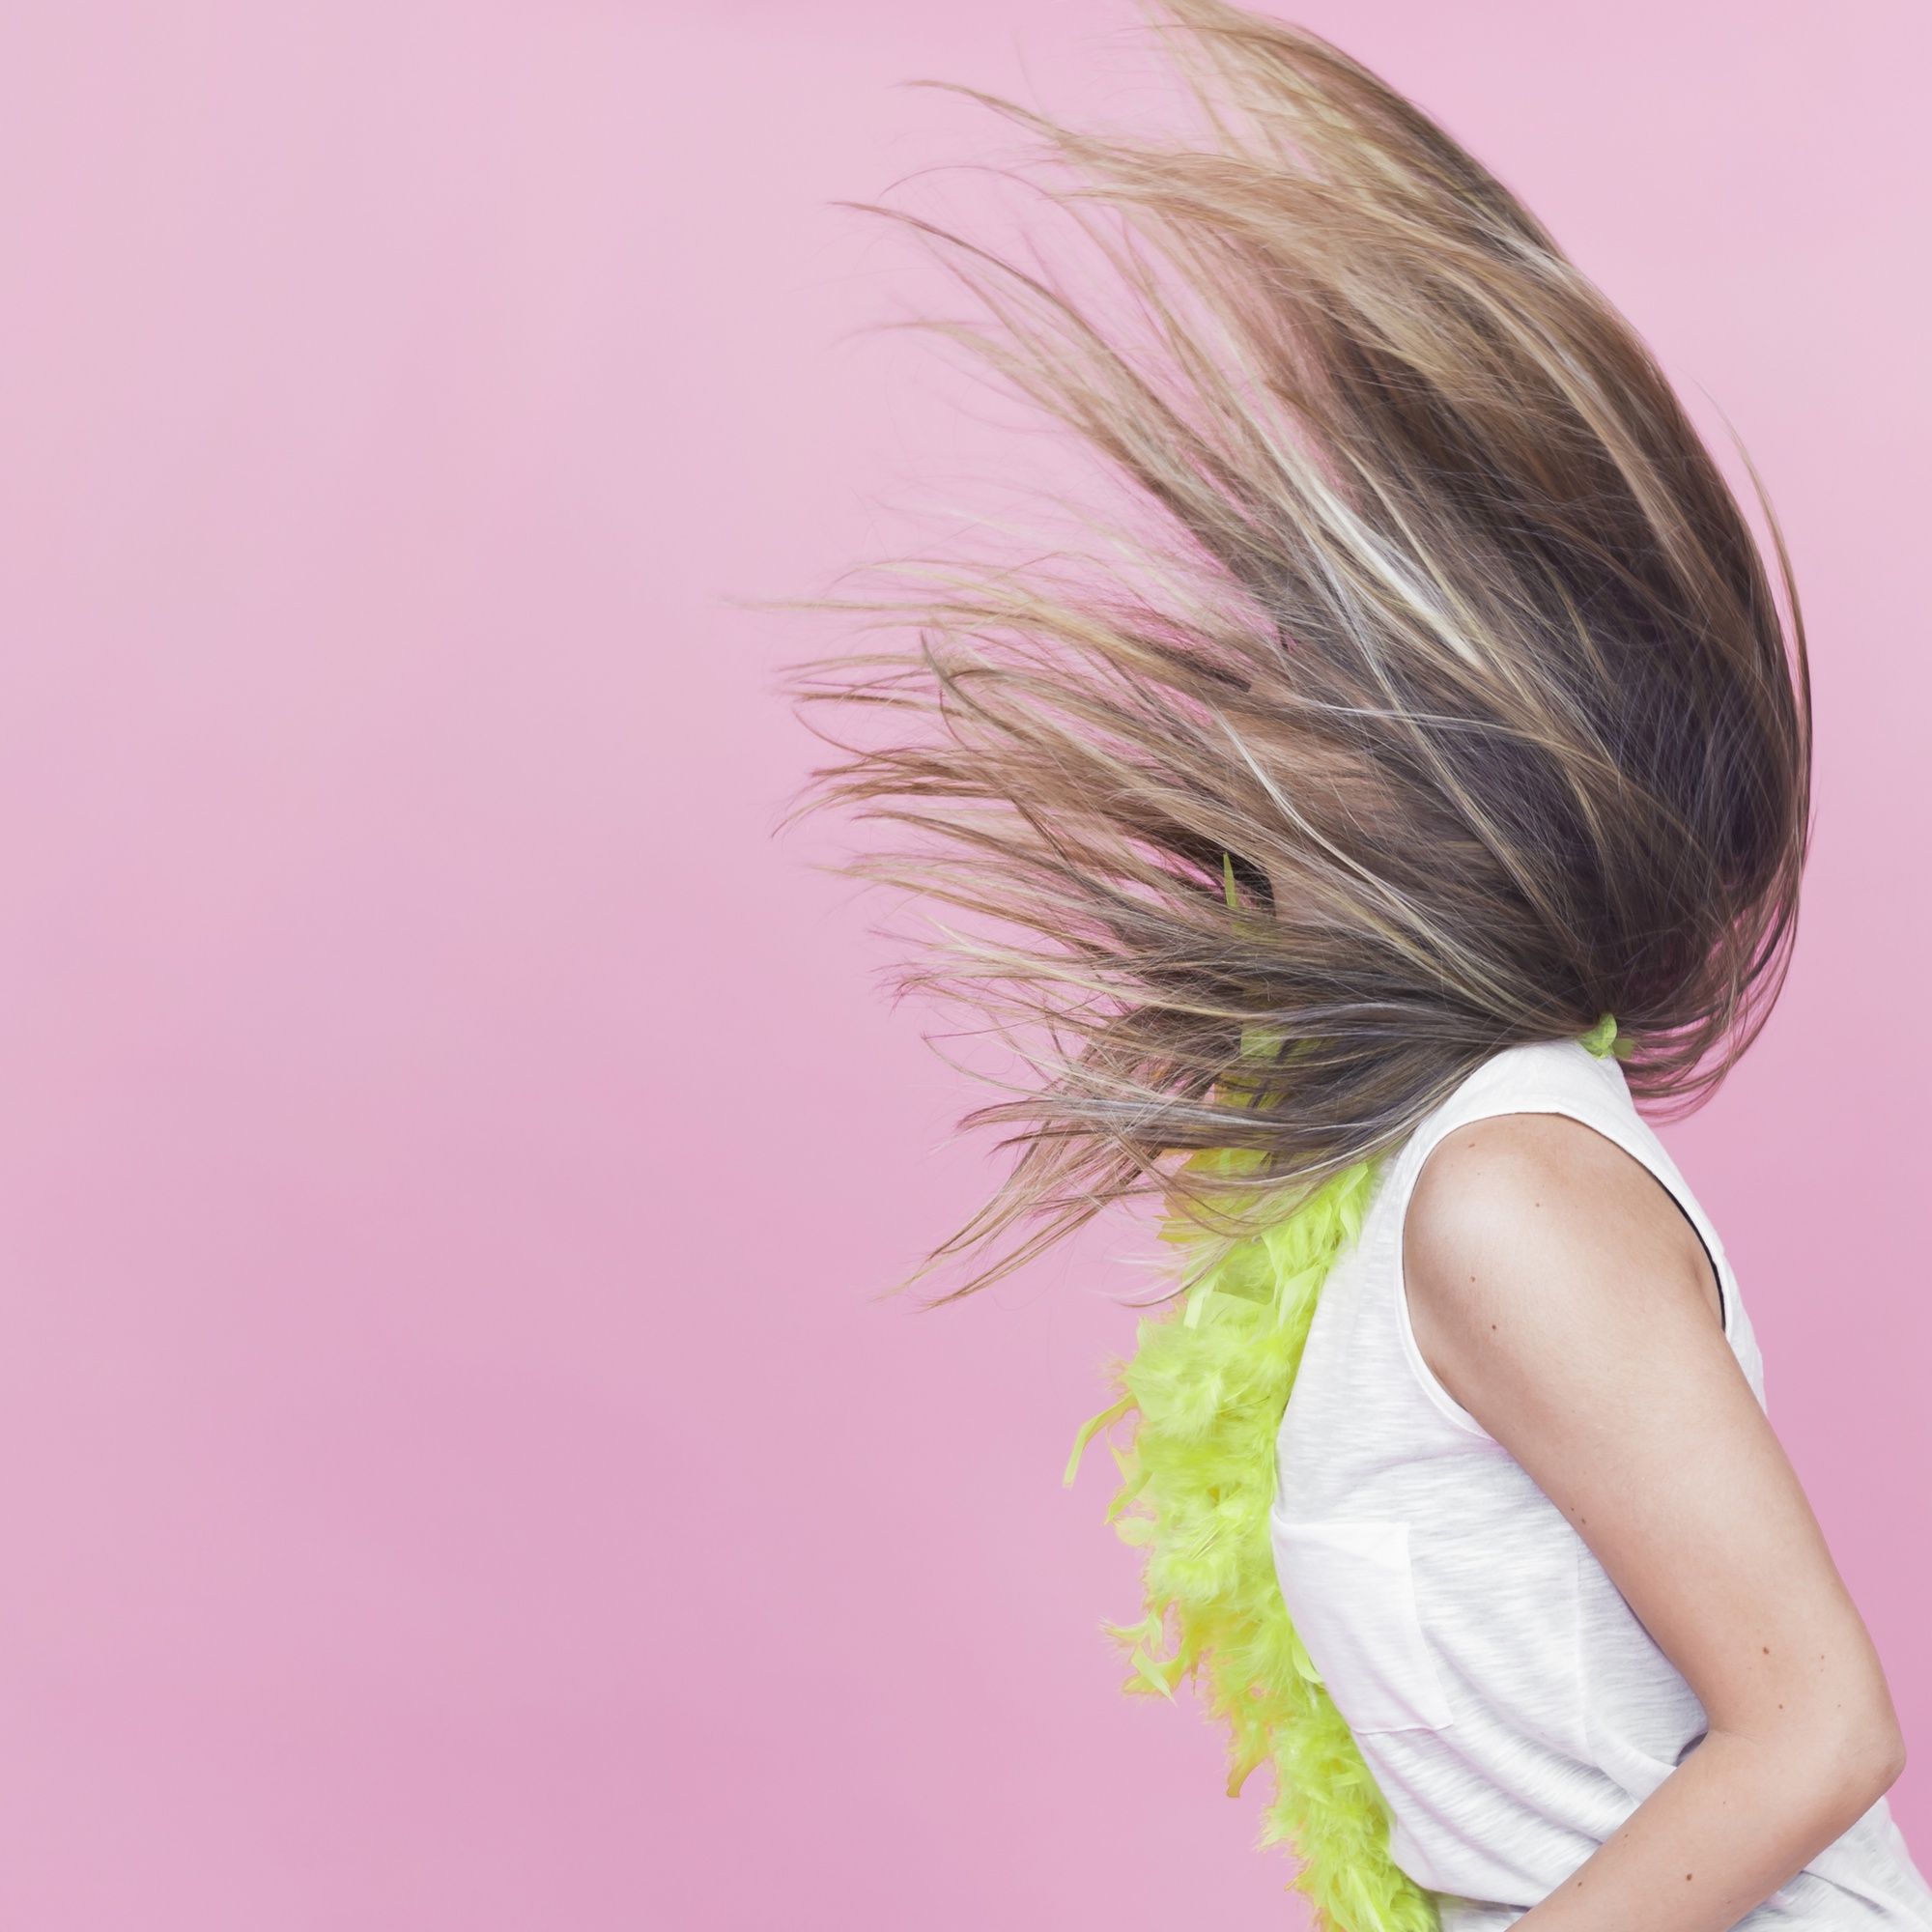 Side view of woman tossing her long hair against pink background